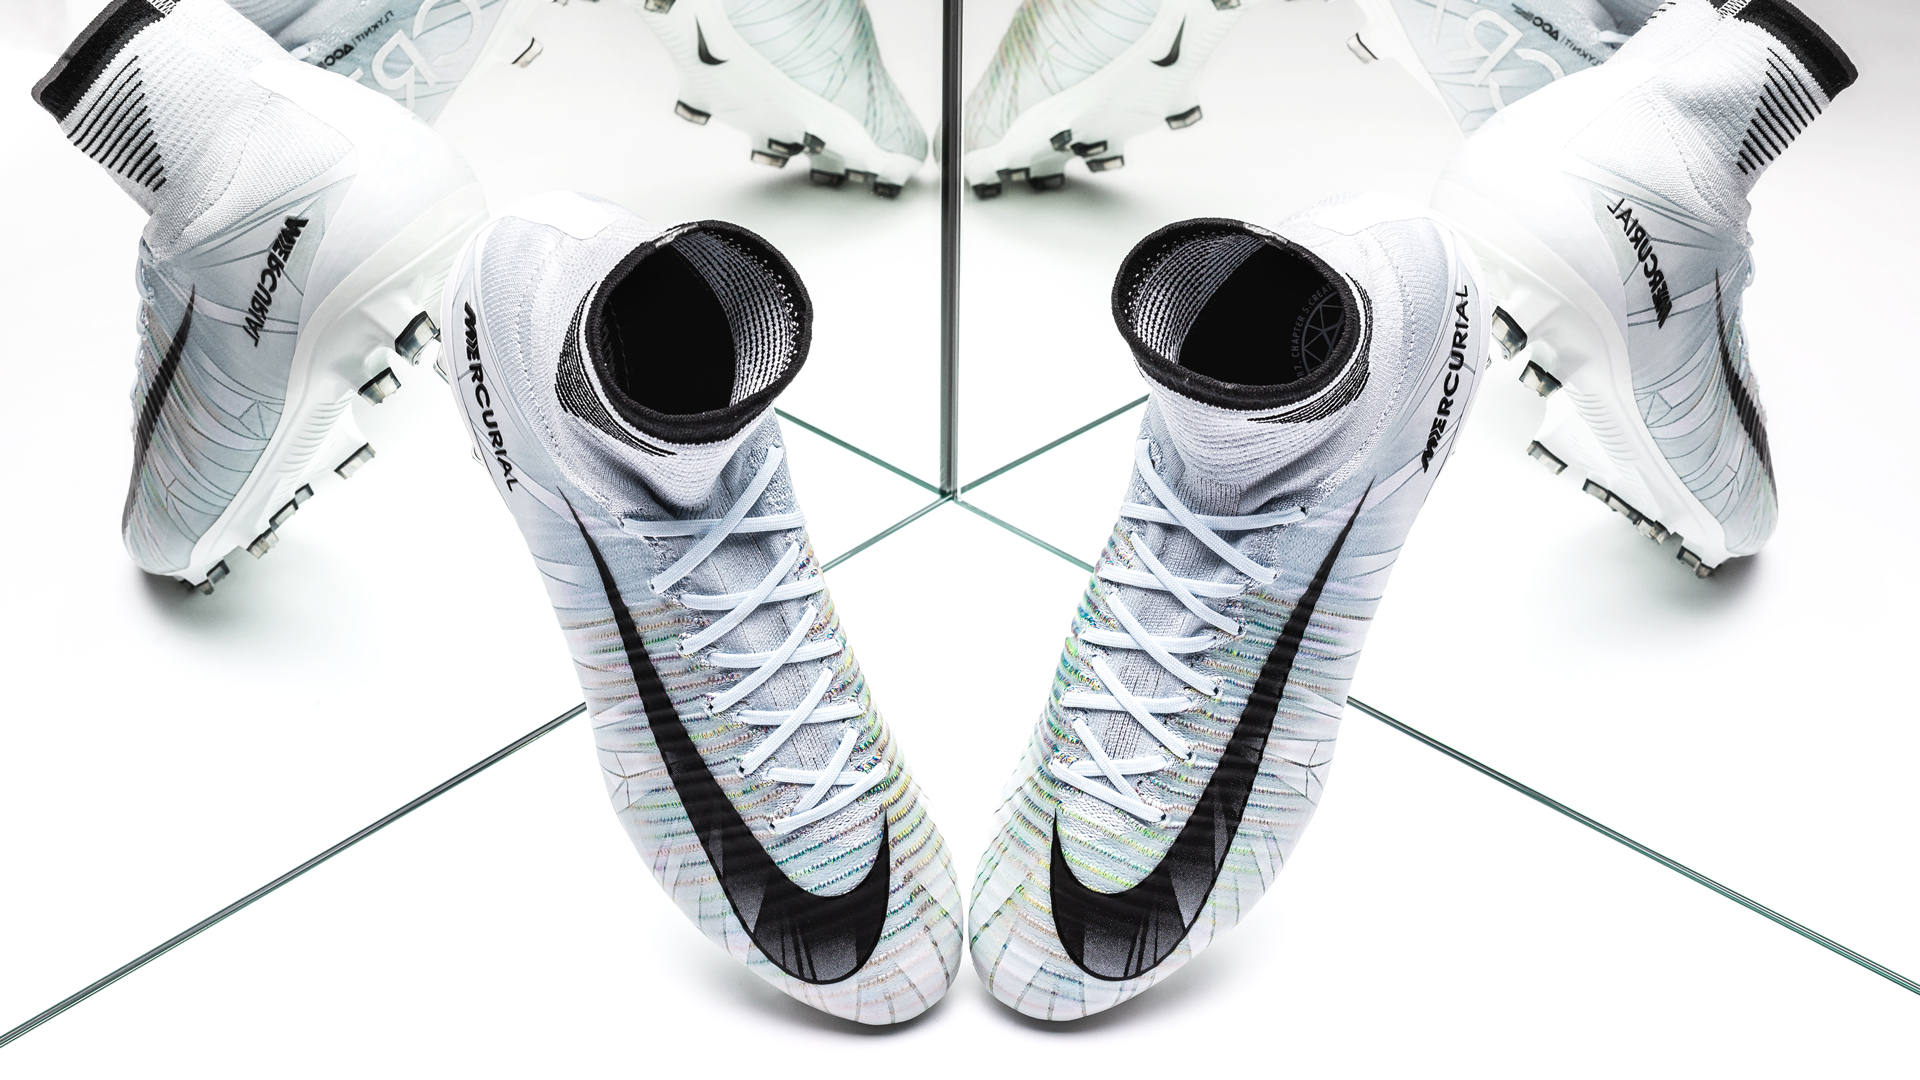 51114265bb0 Meet the new Nike CR7 Chapter 5 boots